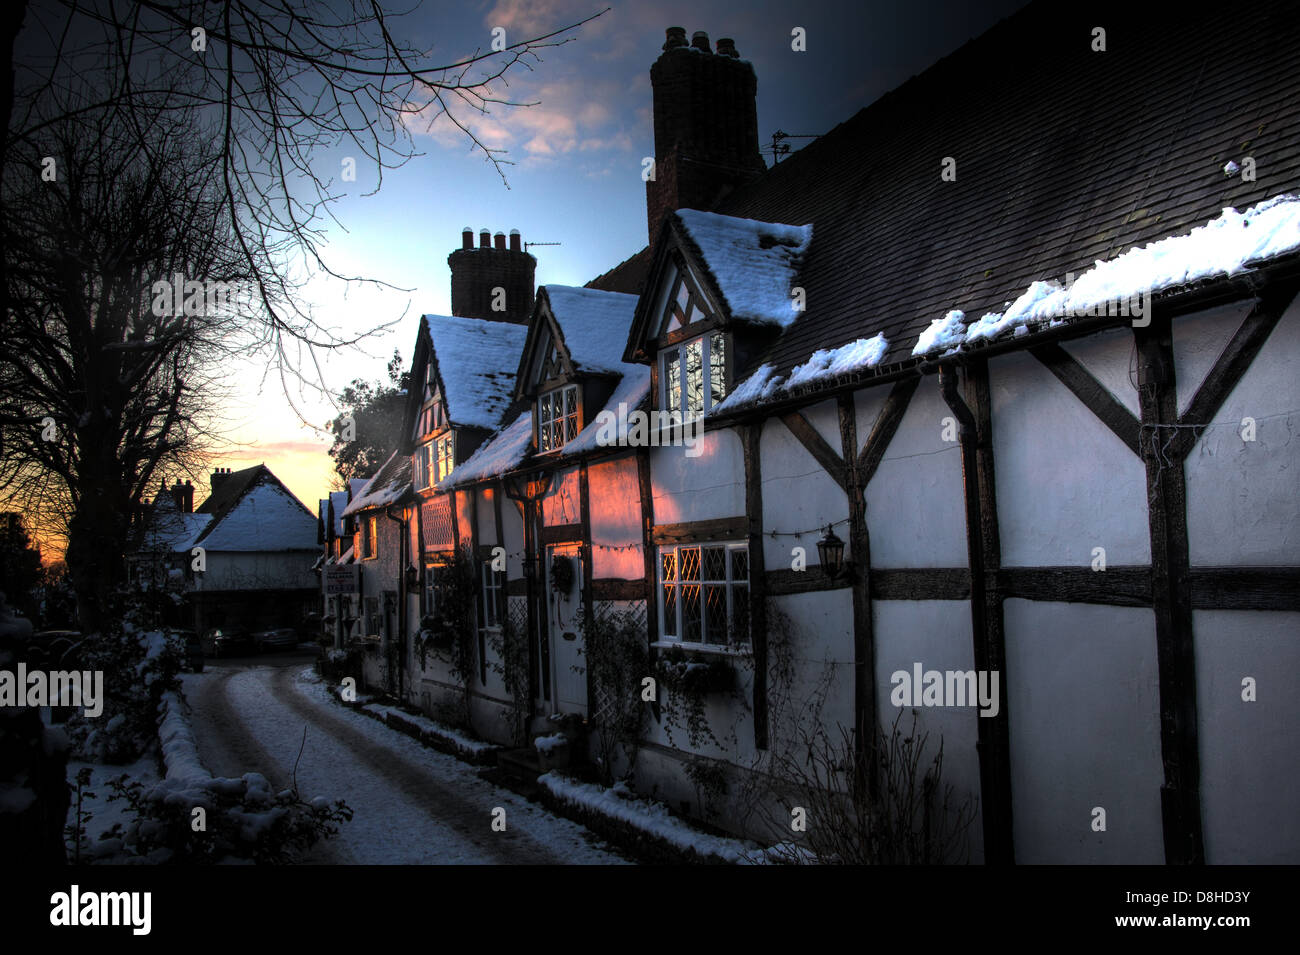 Great Budworth timber tudor thatched cottages In the snow, winter 2010, Northwich, Cheshire, England, UK. These Stock Photo